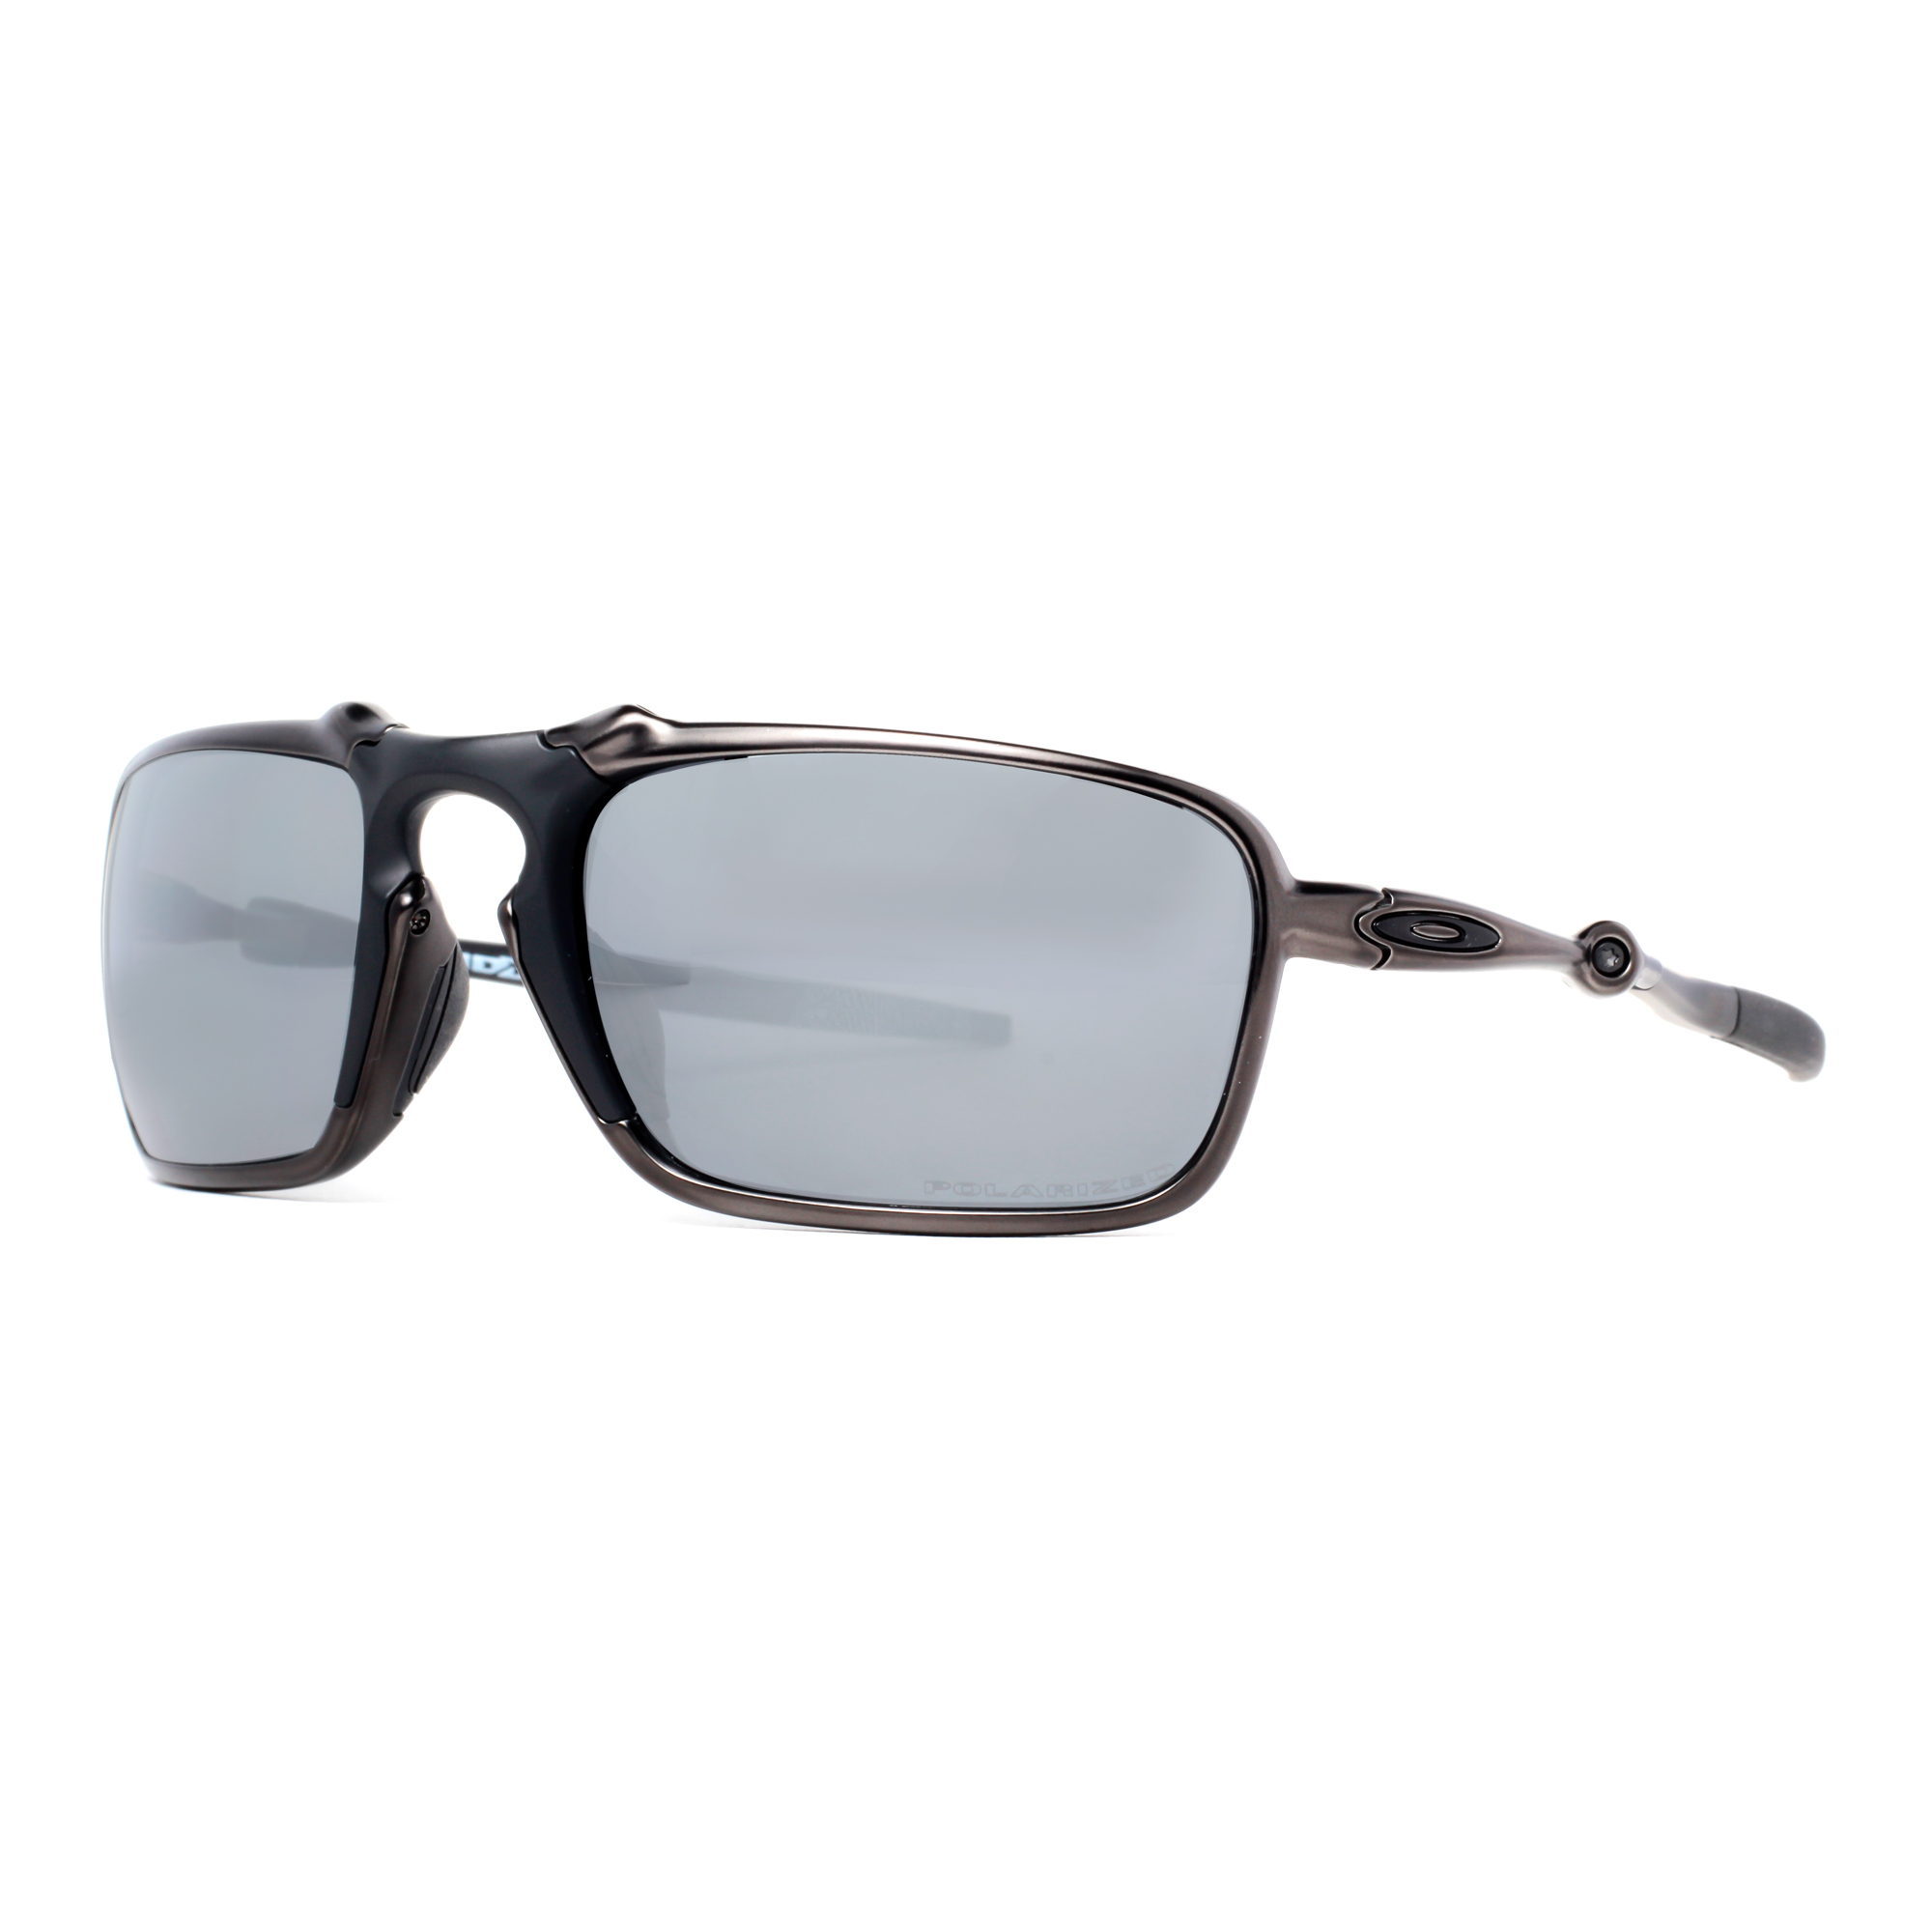 7fa856ab216 Oakley Badman Polarized Sunglasses